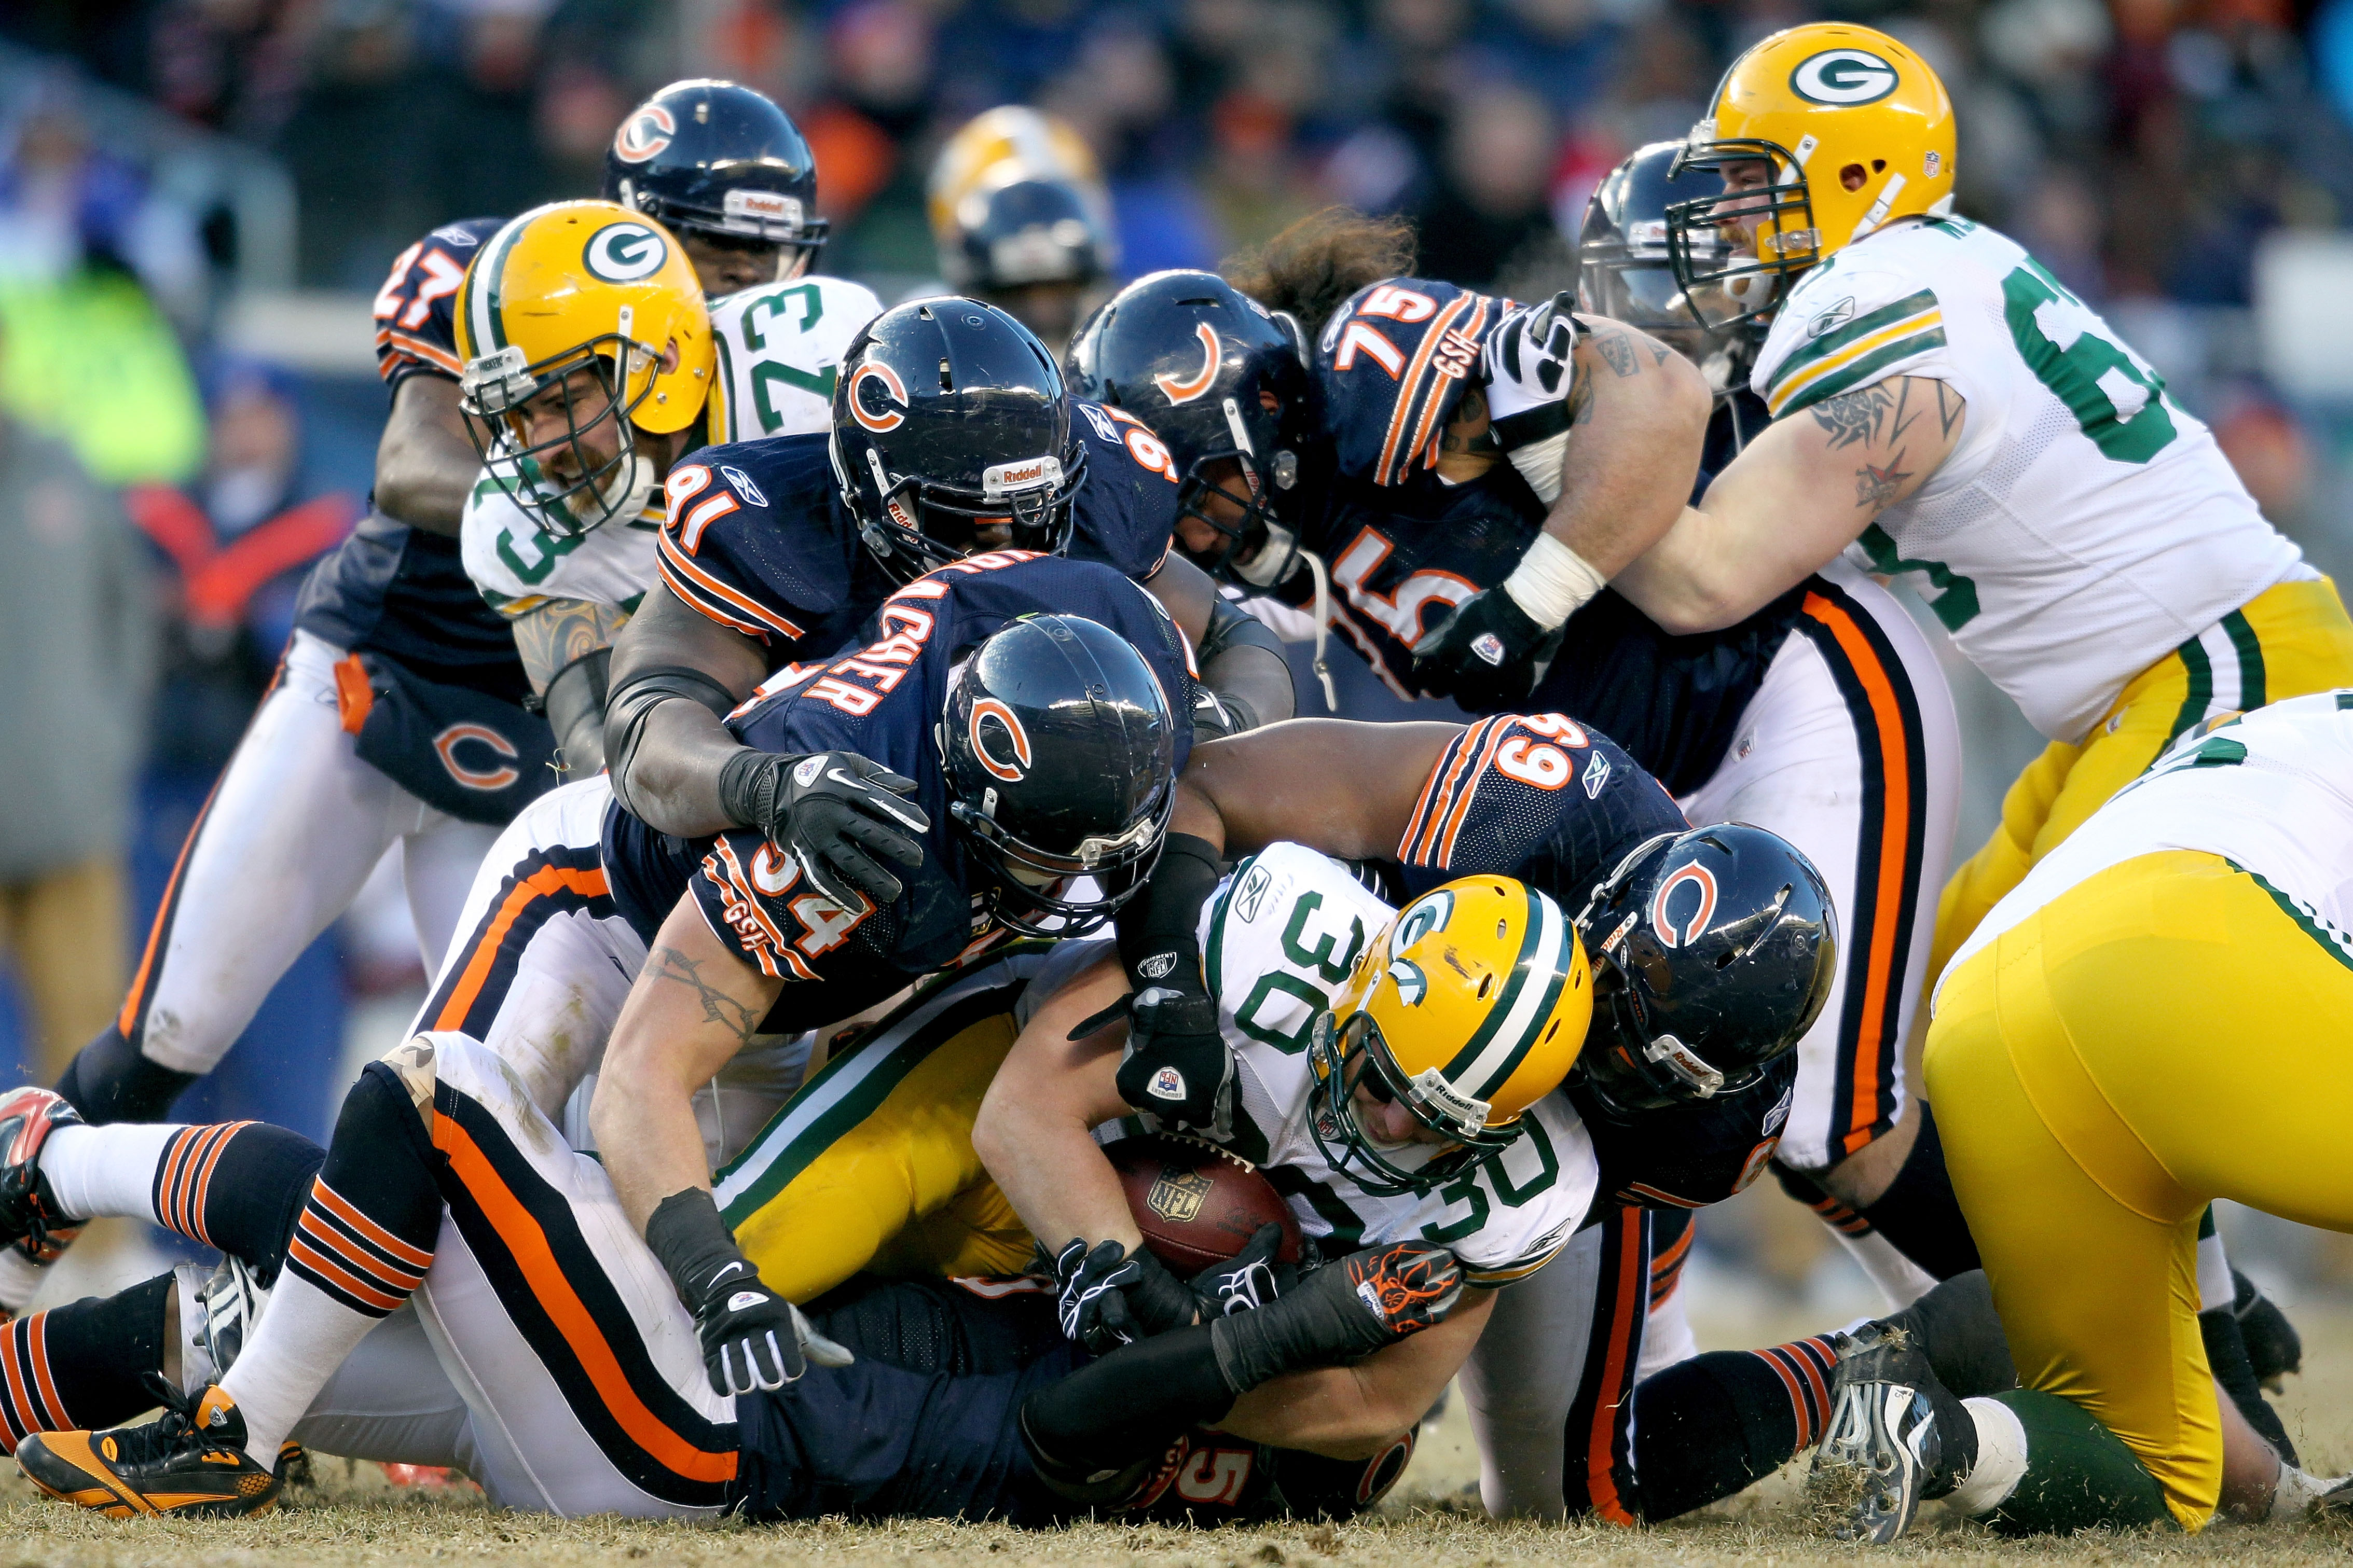 GREEN BAY PACKERS nfl football chicago bears wallpaper 4535x3023 4535x3023